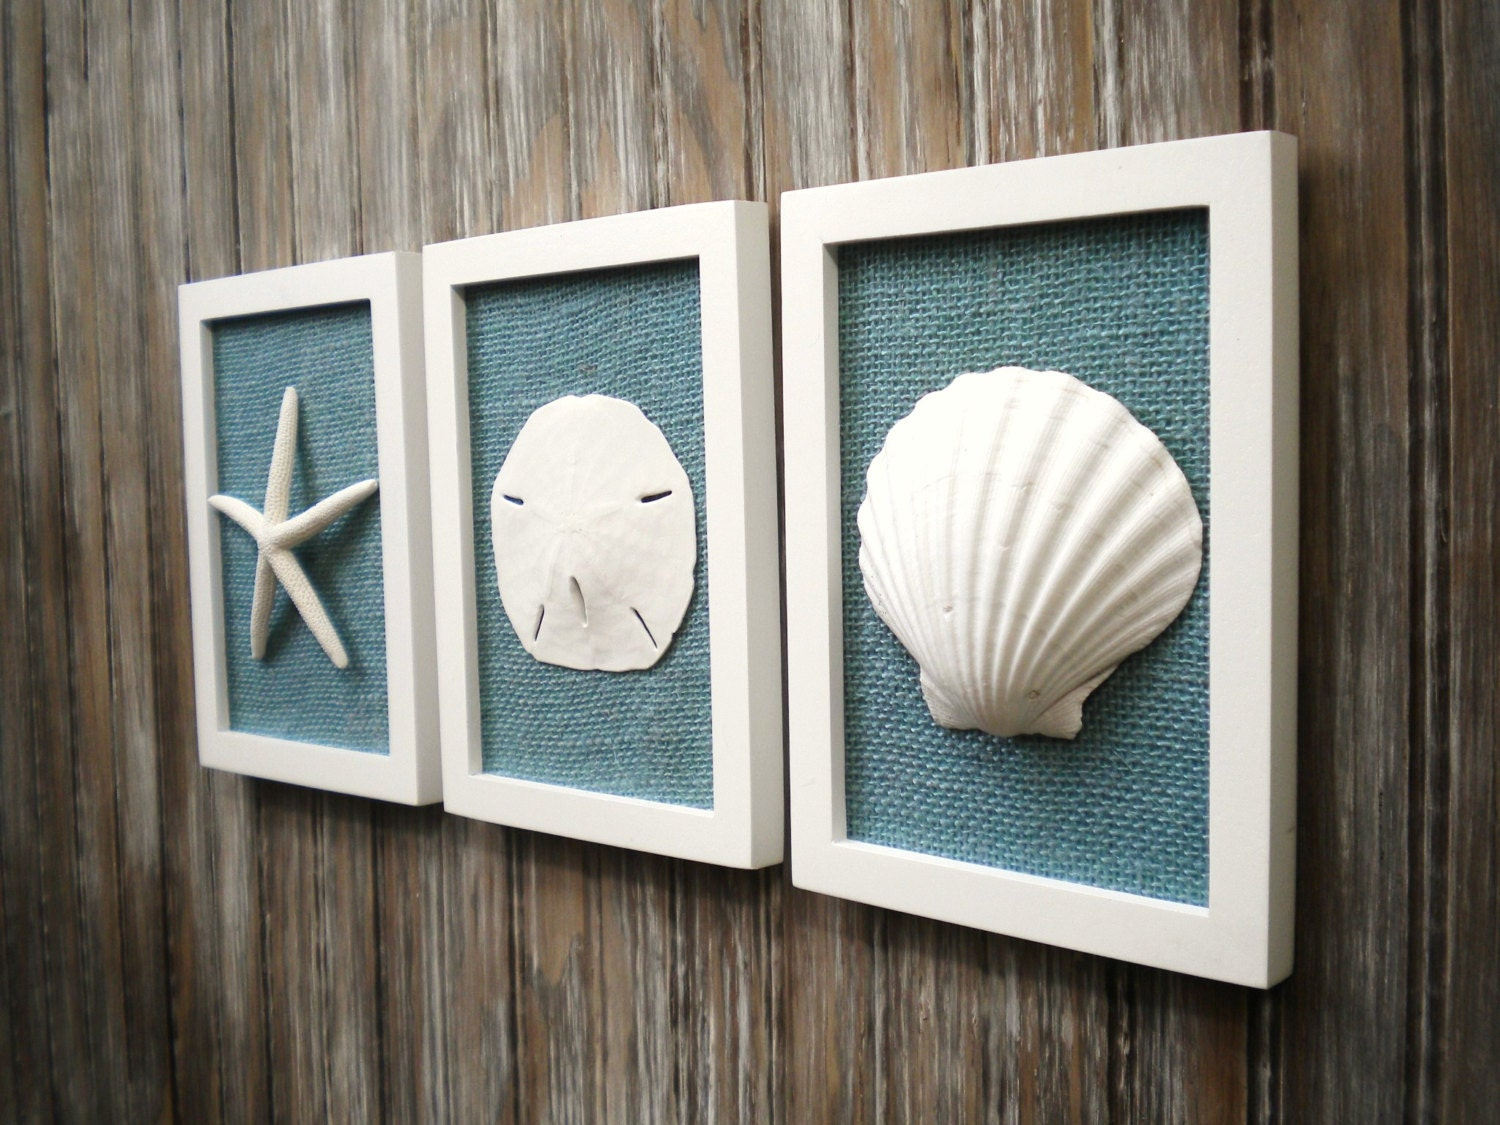 cottage chic set of beach decor wall art nautical decor coastal decor - Coastal Wall Decor